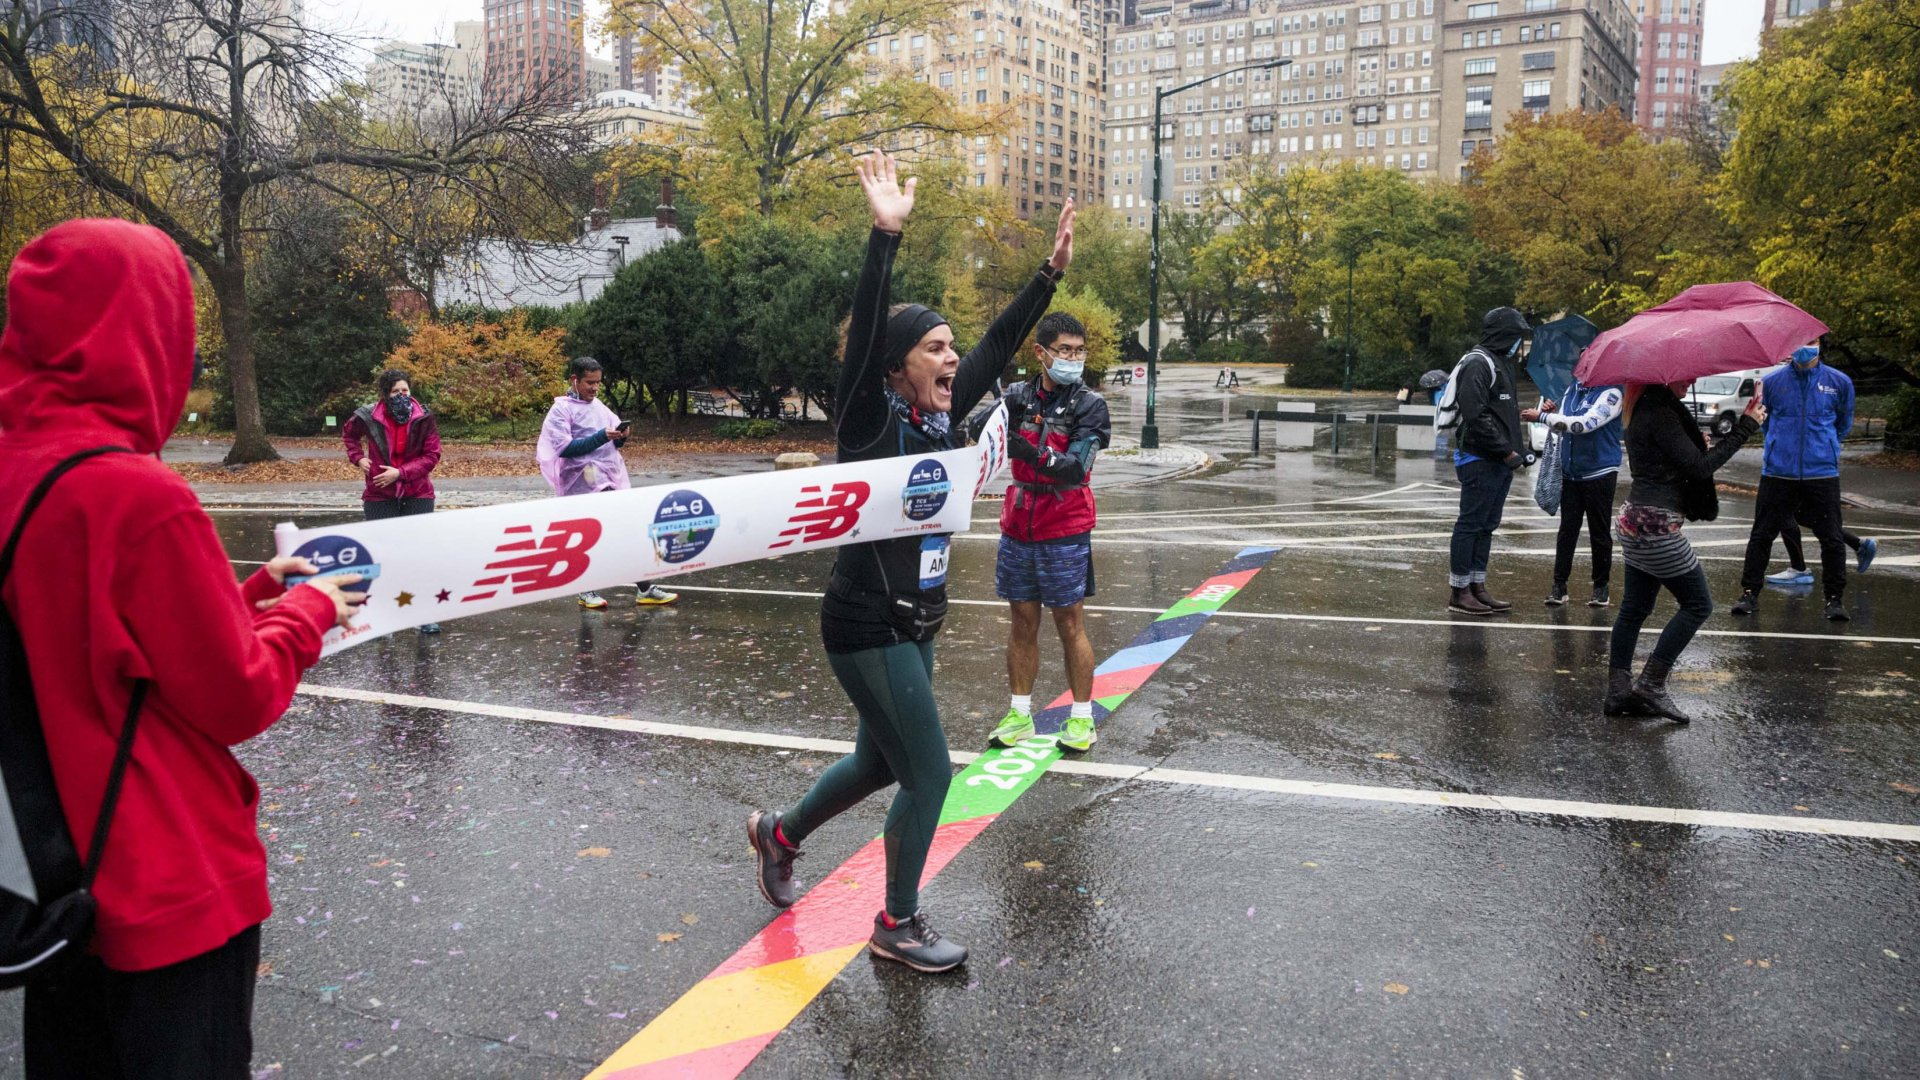 A touch of realism is added with a tape across what would have been, if not for its cancellation, the Central Park finish line of the 2020 New York City Marathon.